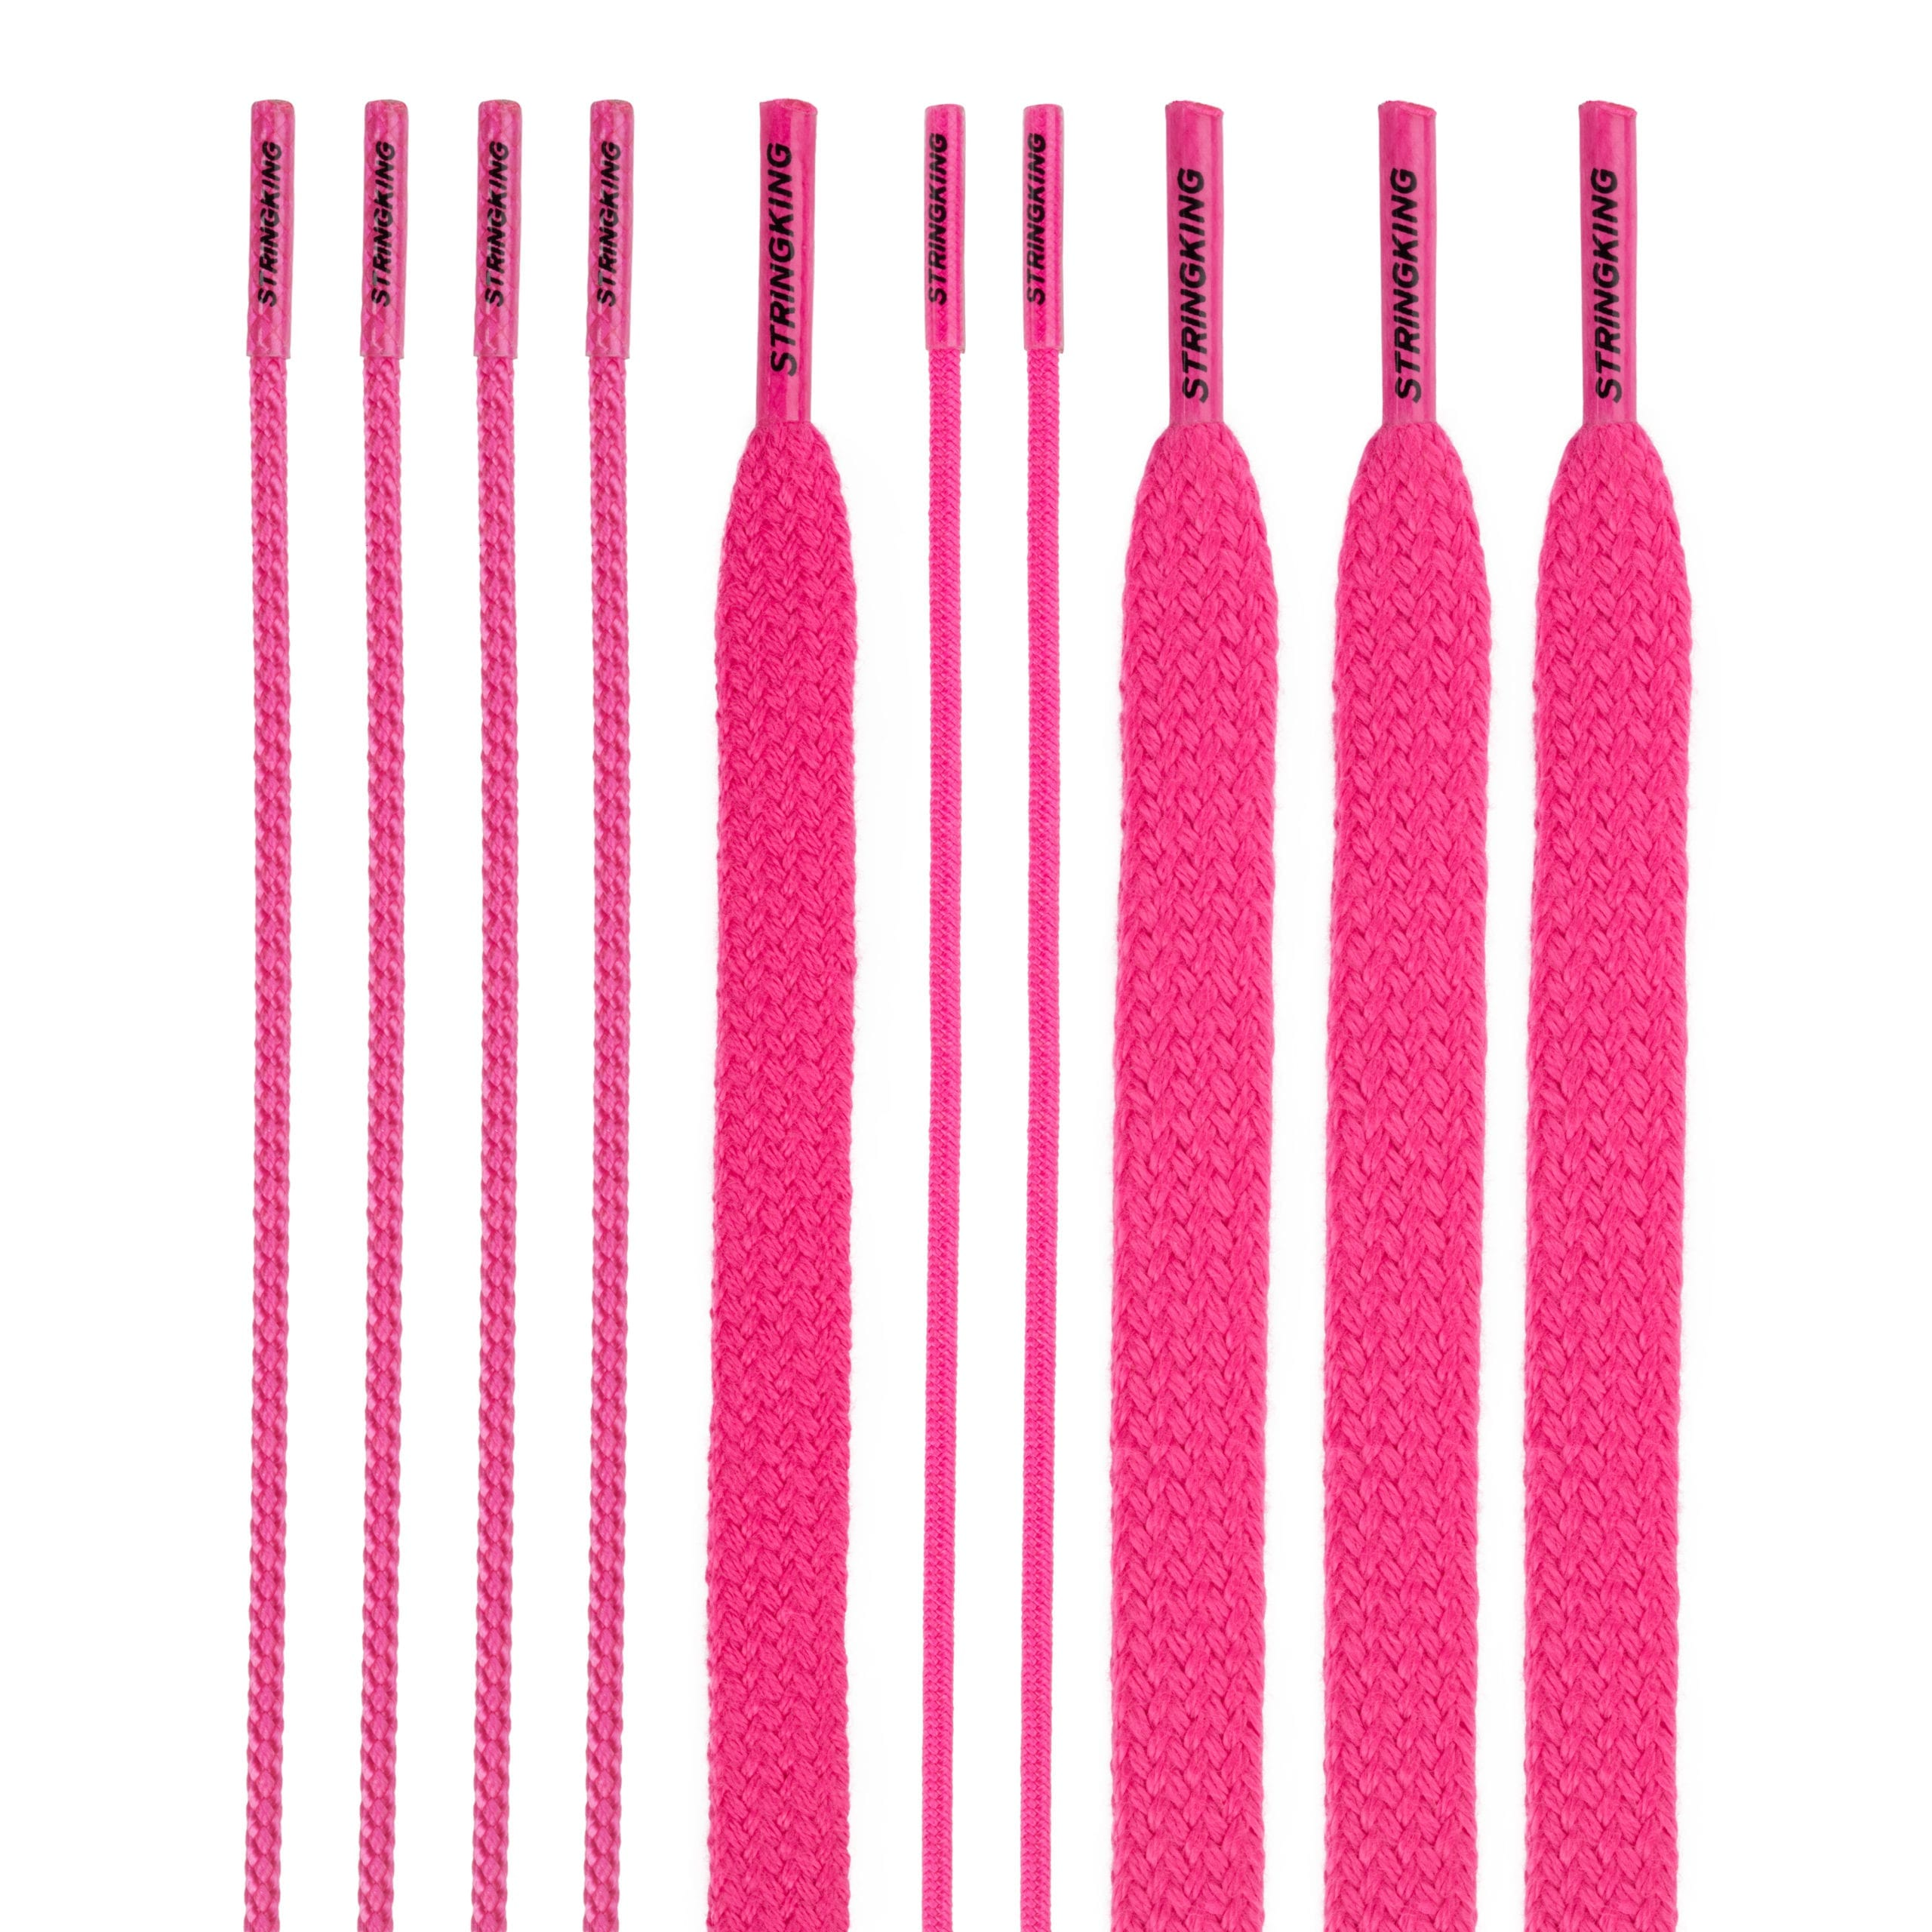 string-kit-BB-retailers-pink-1-scaled-1.jpg